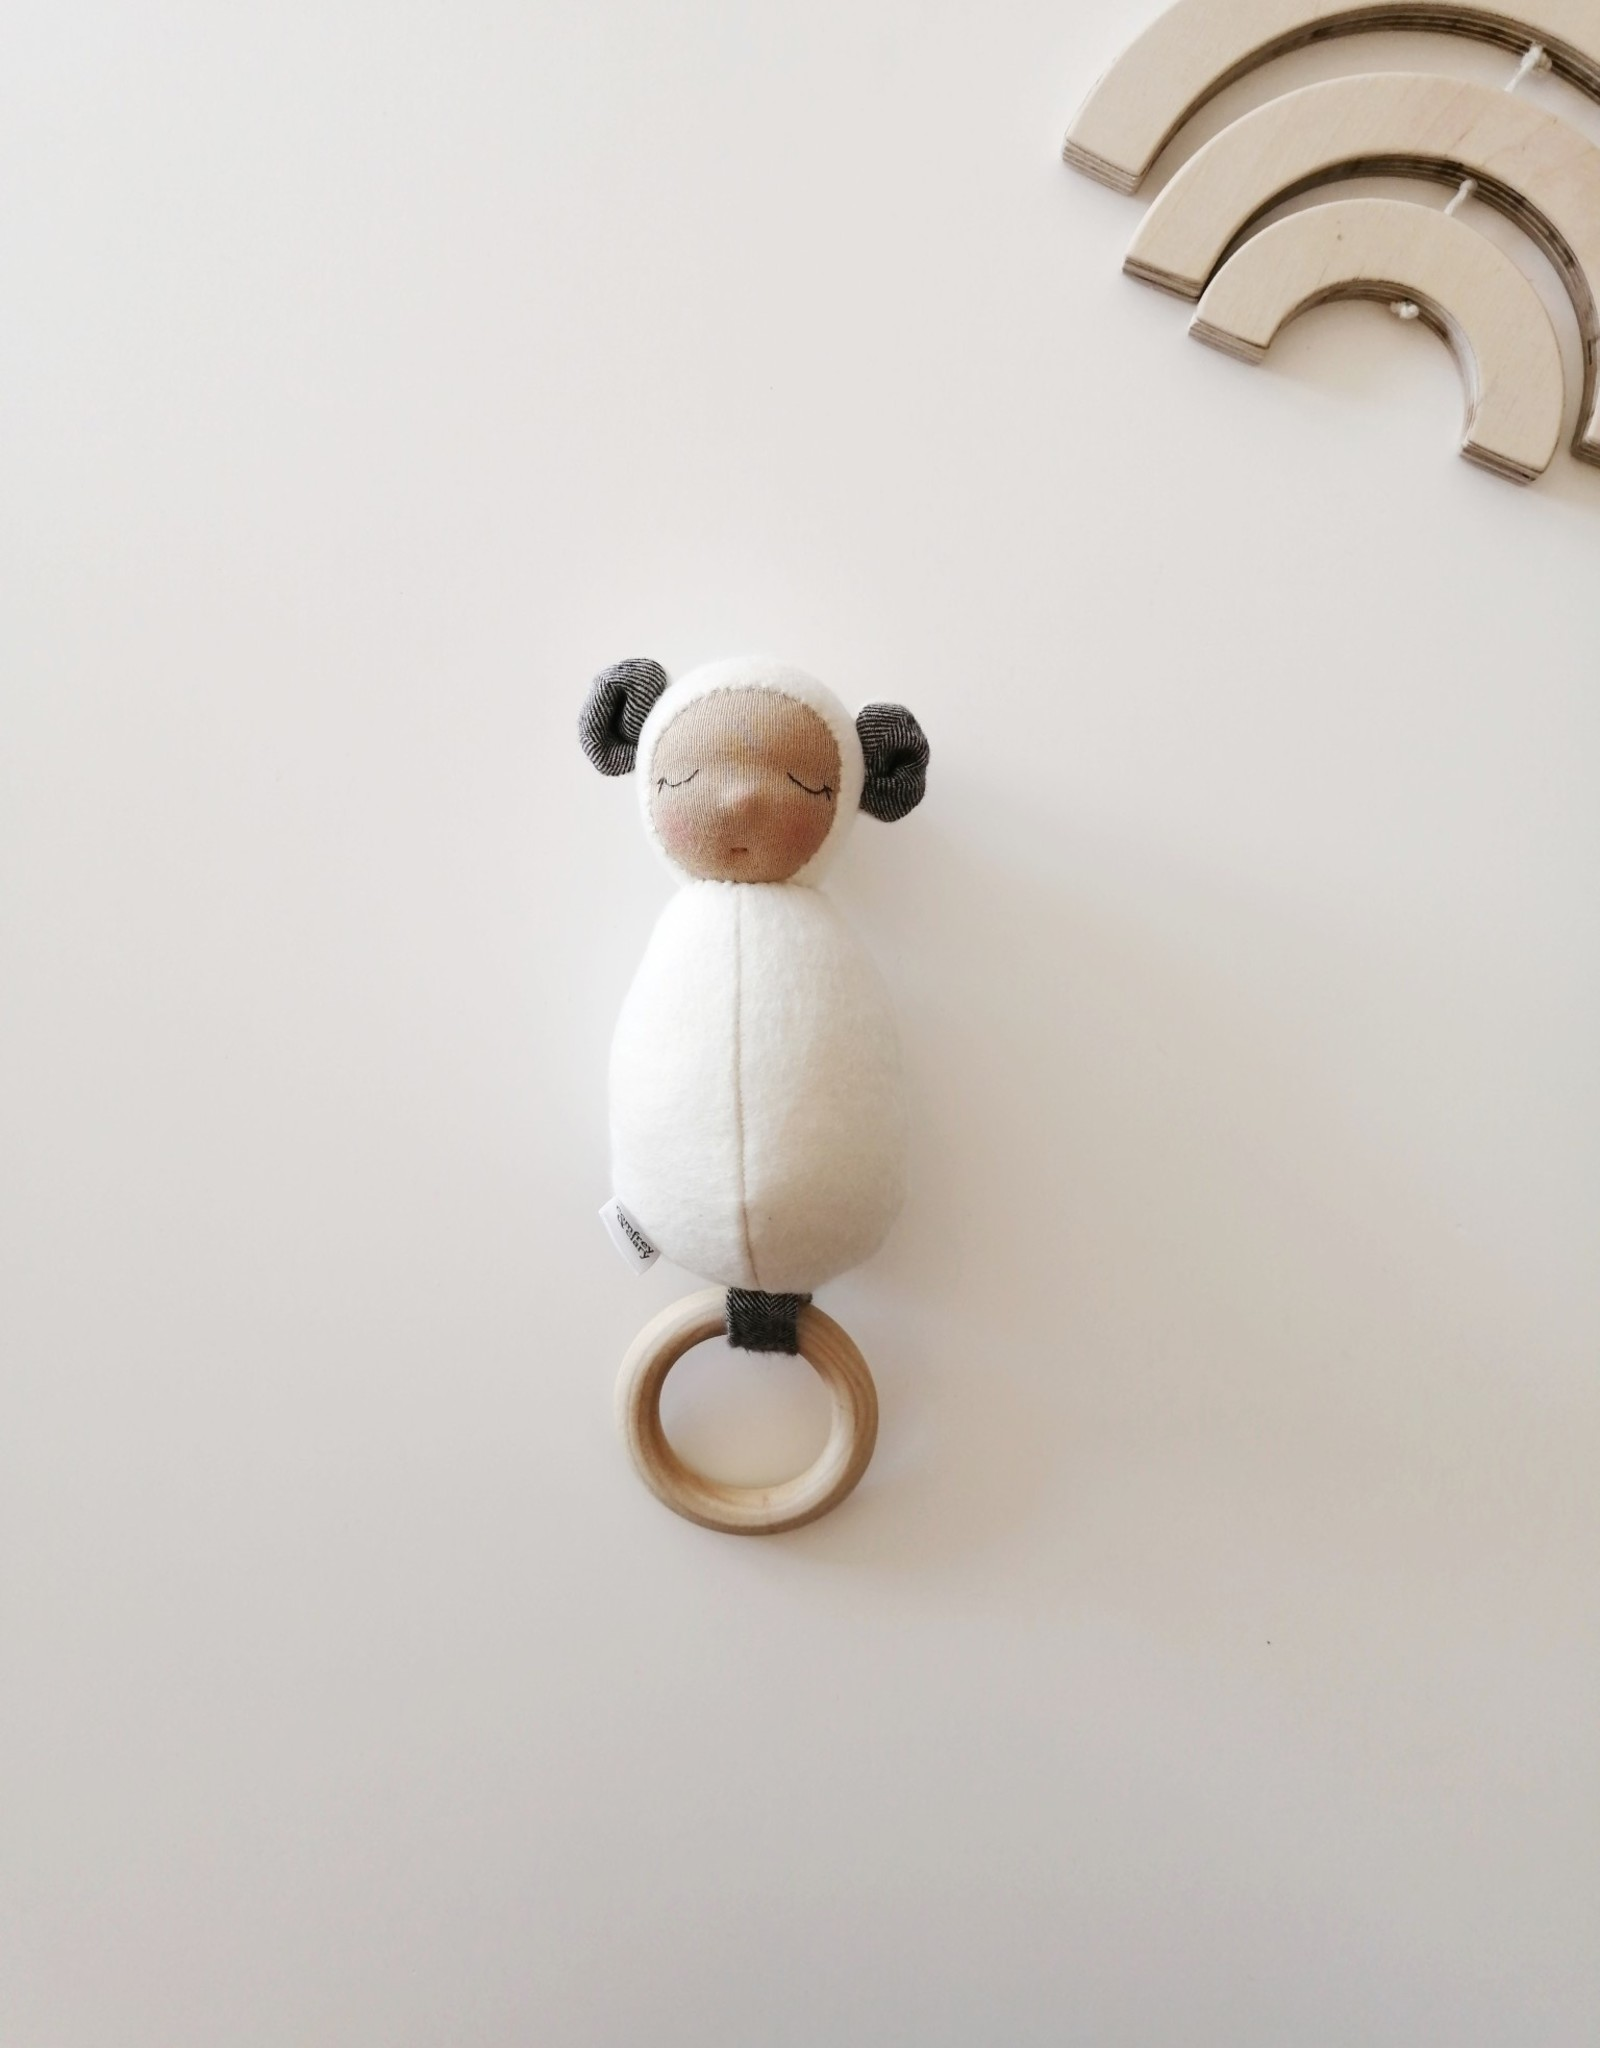 Comfrey & Clary Rattle Baby lovey waldorf - Organic bamboo jersey